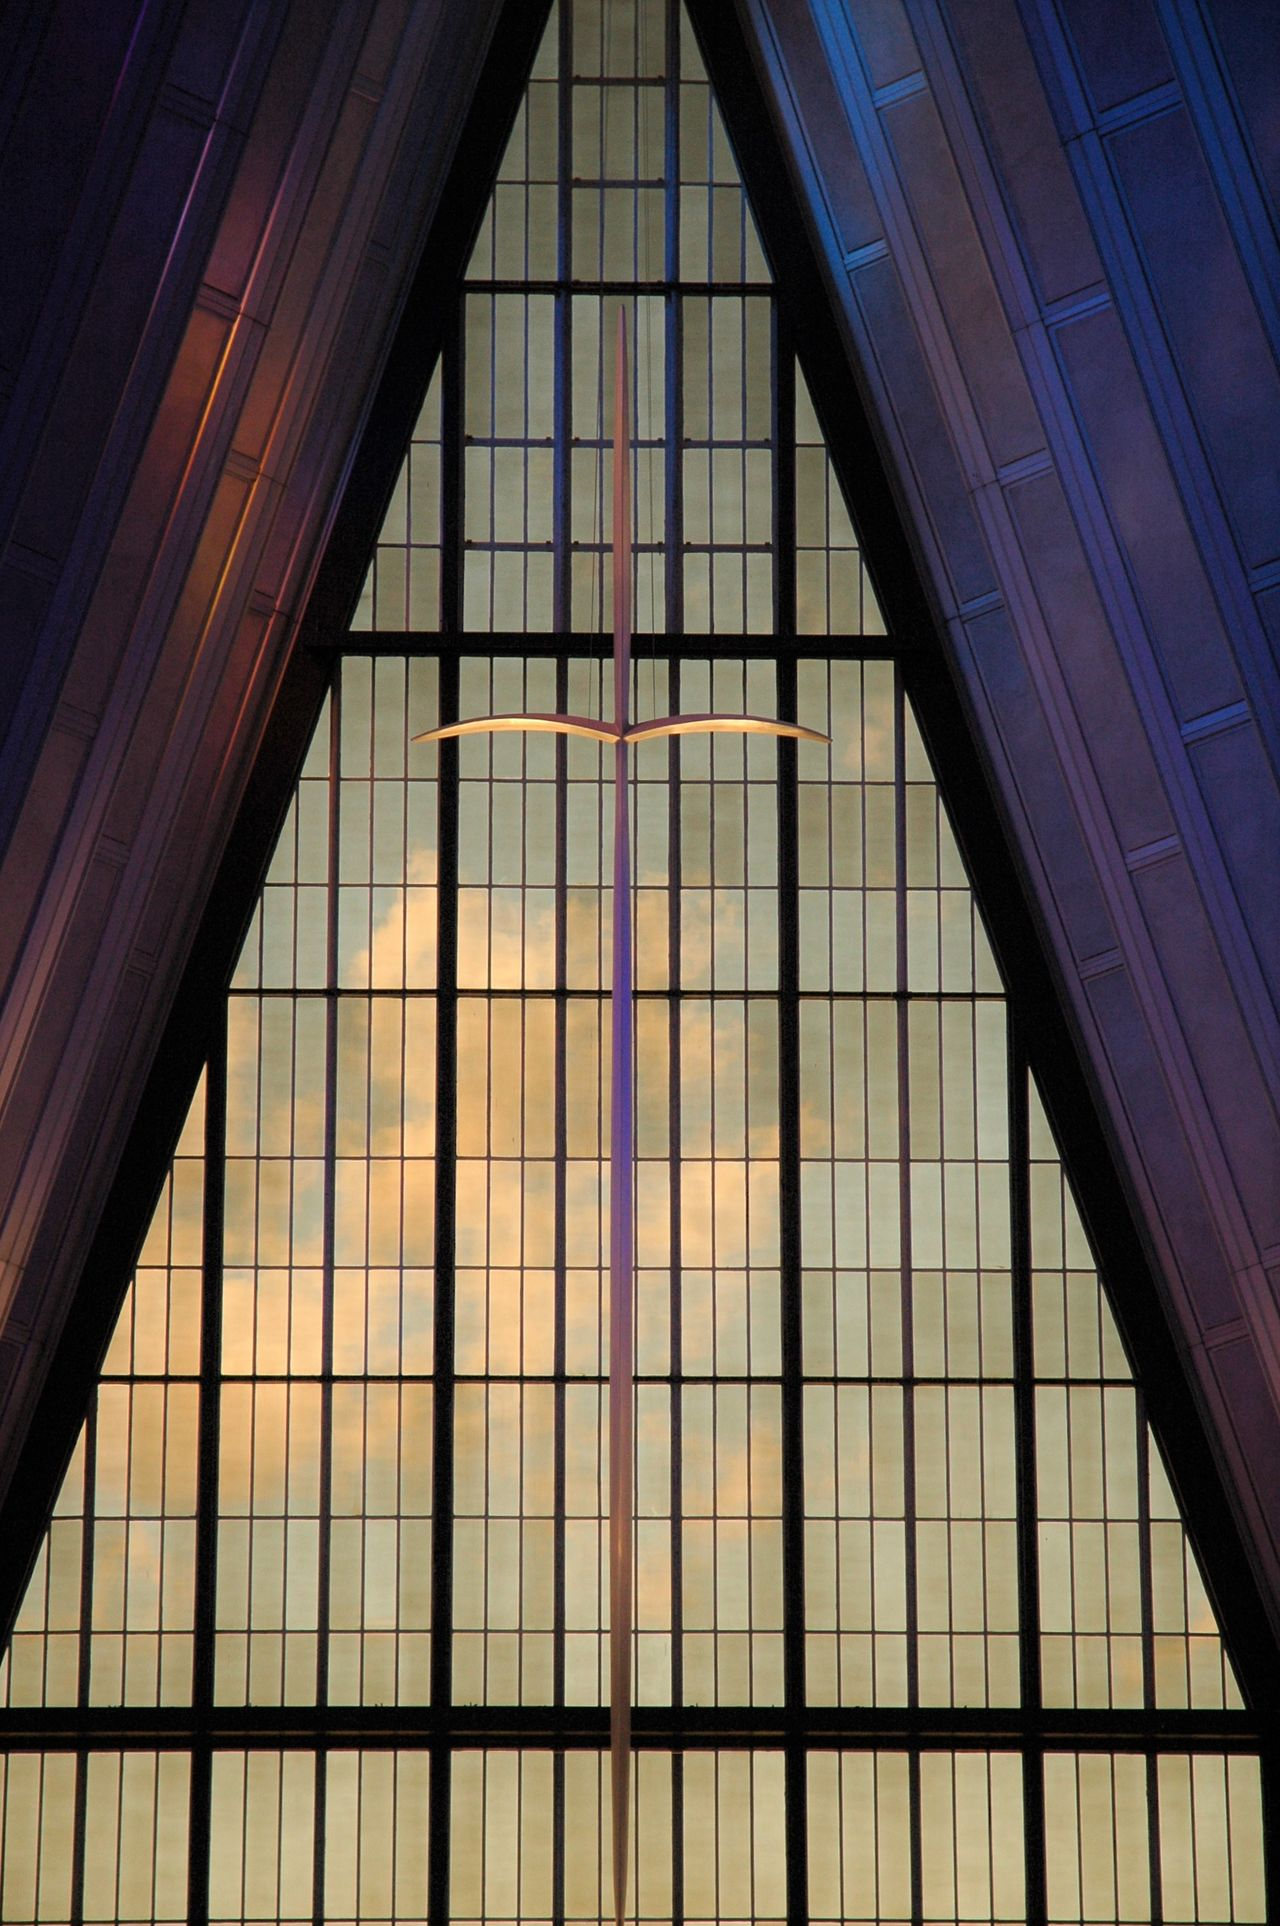 Architectural Feature Architecture Chapel Christian Cross Indoors  Metal USAF Academy Window